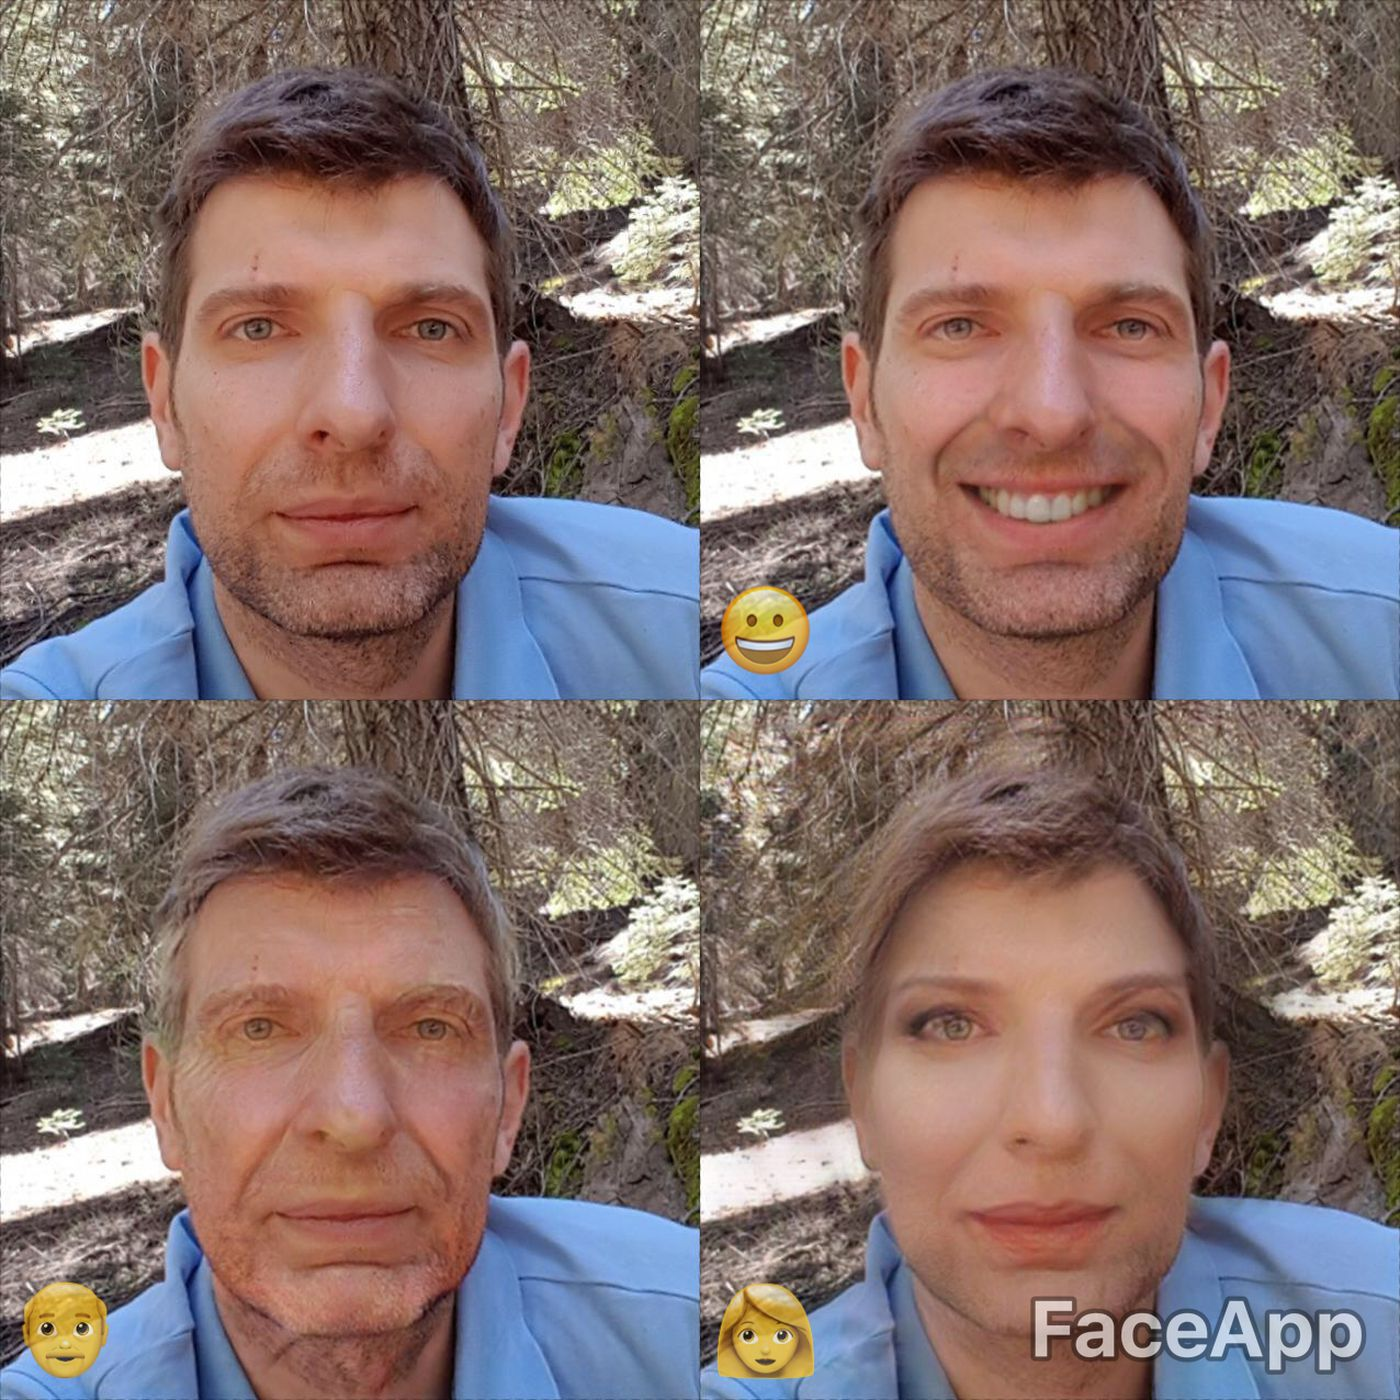 If you've ever wanted to imagine yourself younger or older